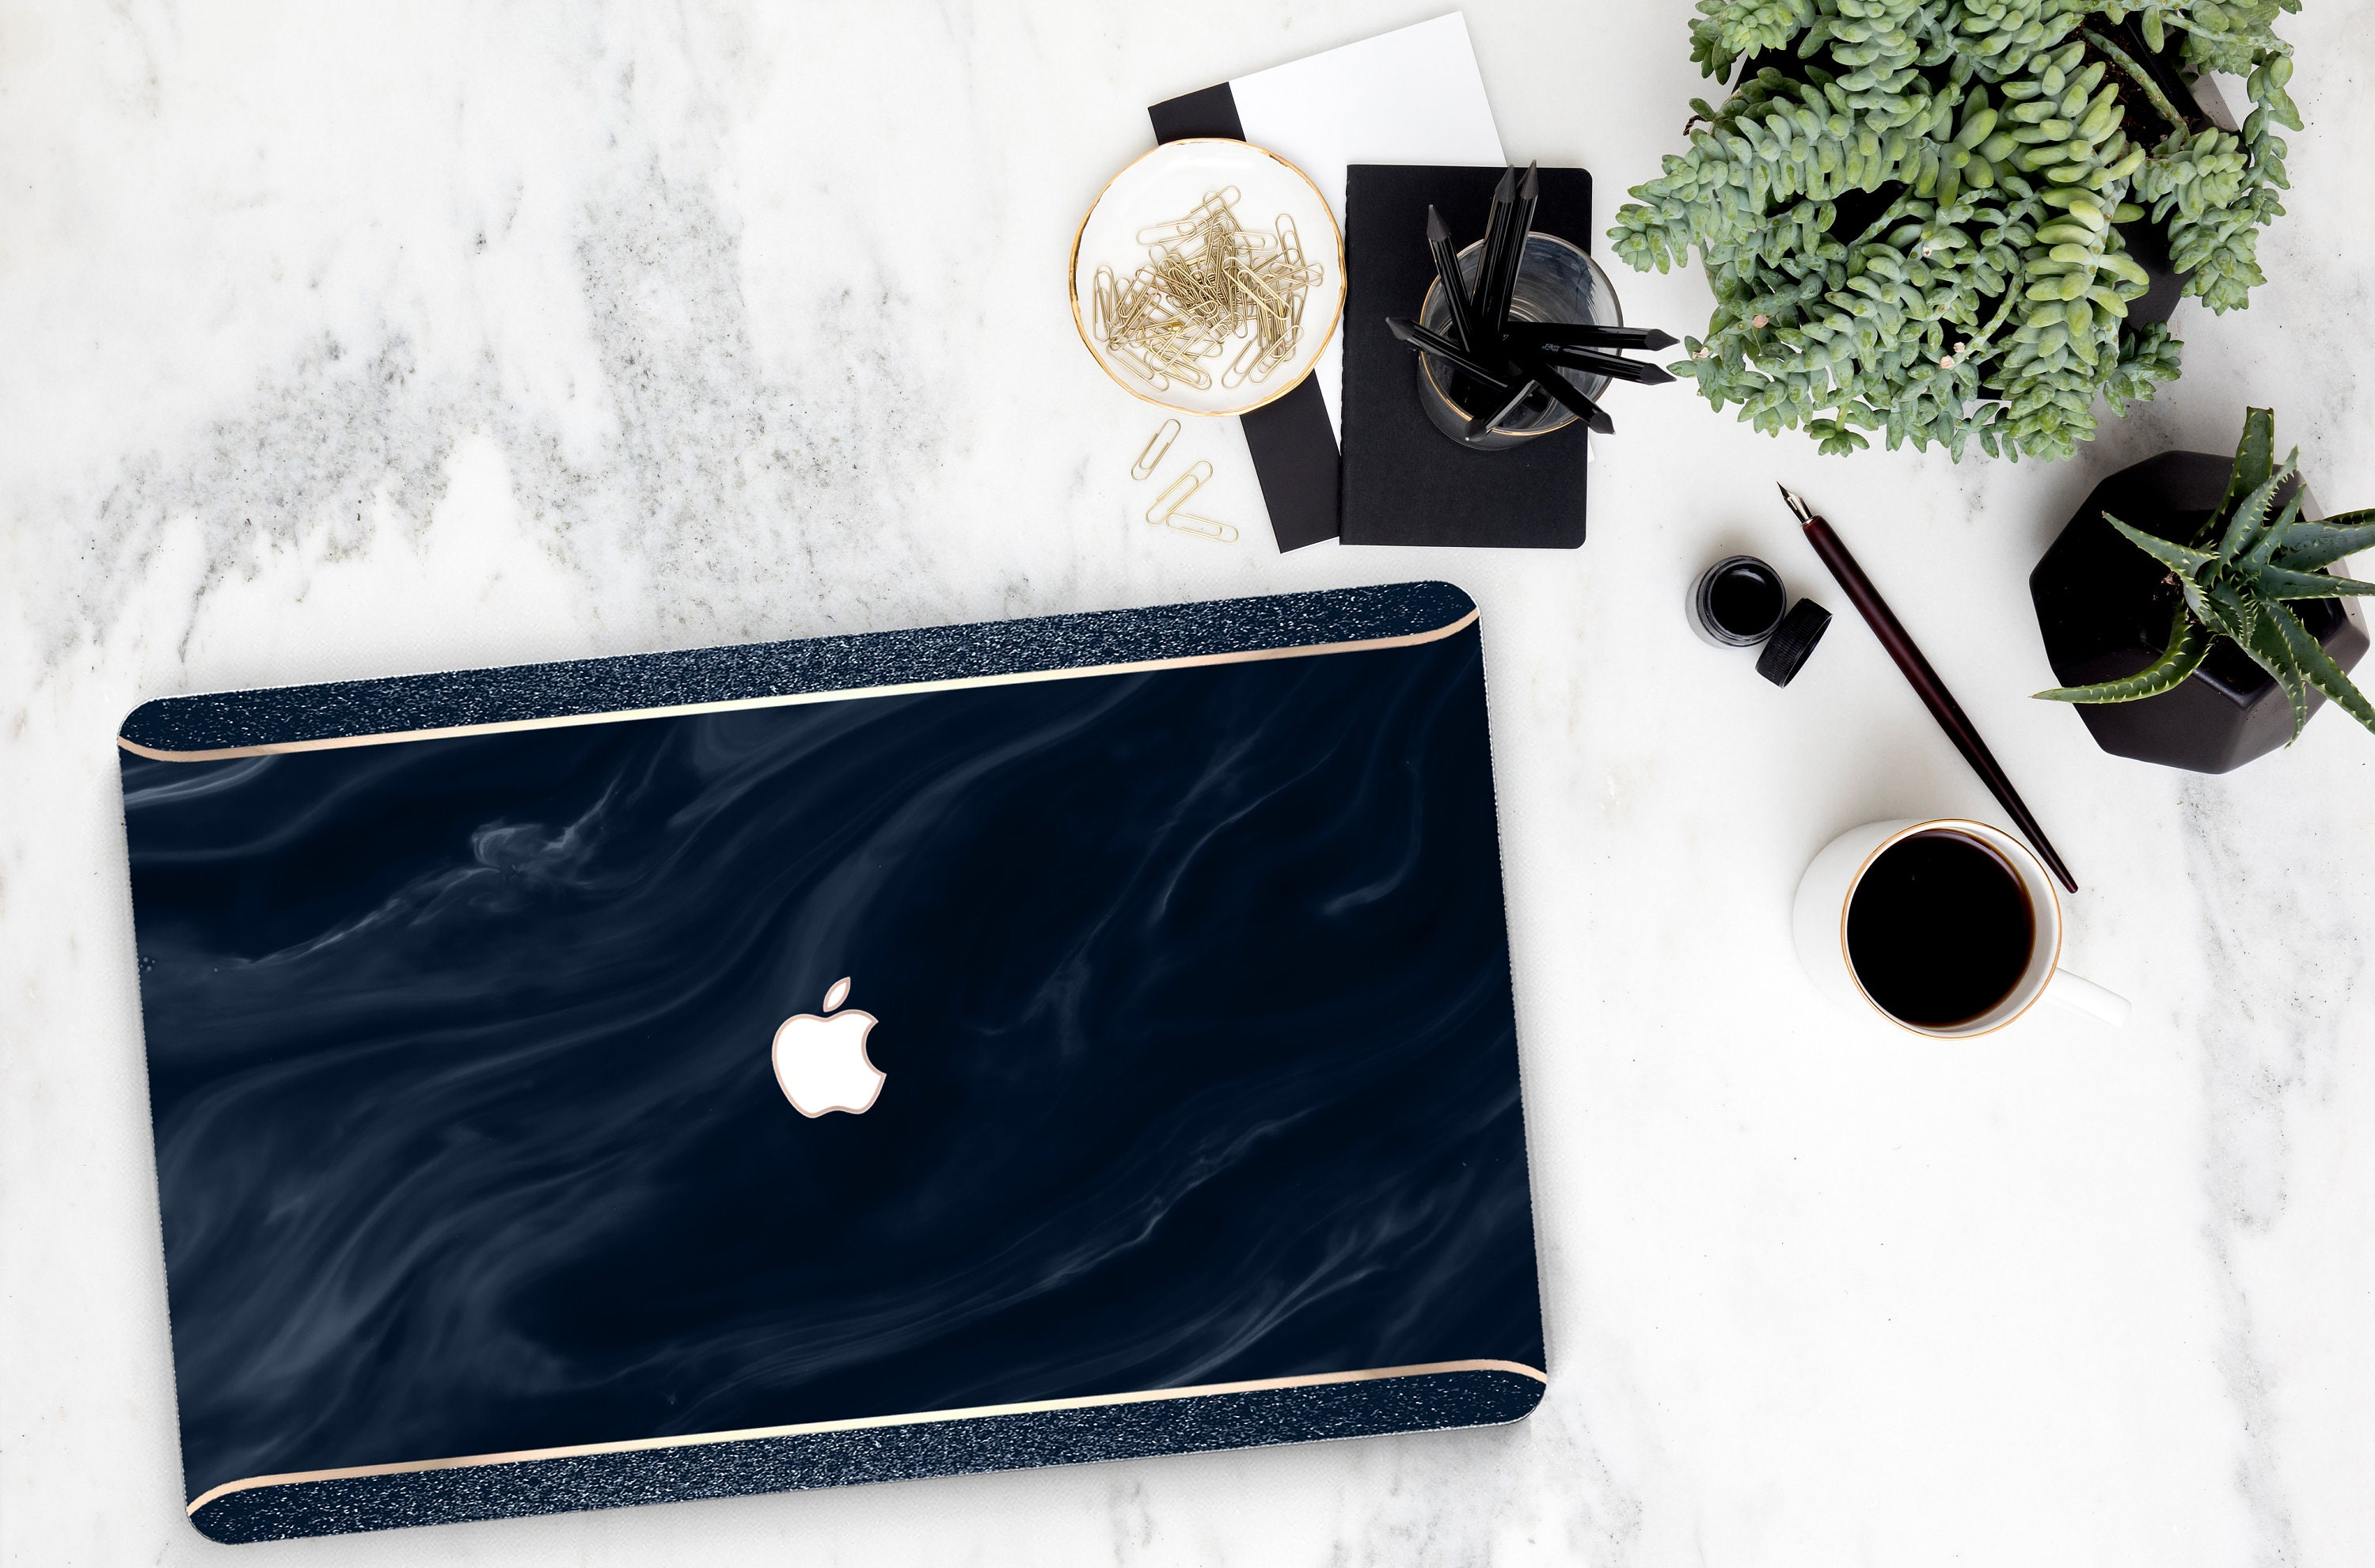 new styles b22c9 b8742 Navy Blue Swirl Marble and Navy Sparkle Edge . Macbook Pro 13 ...